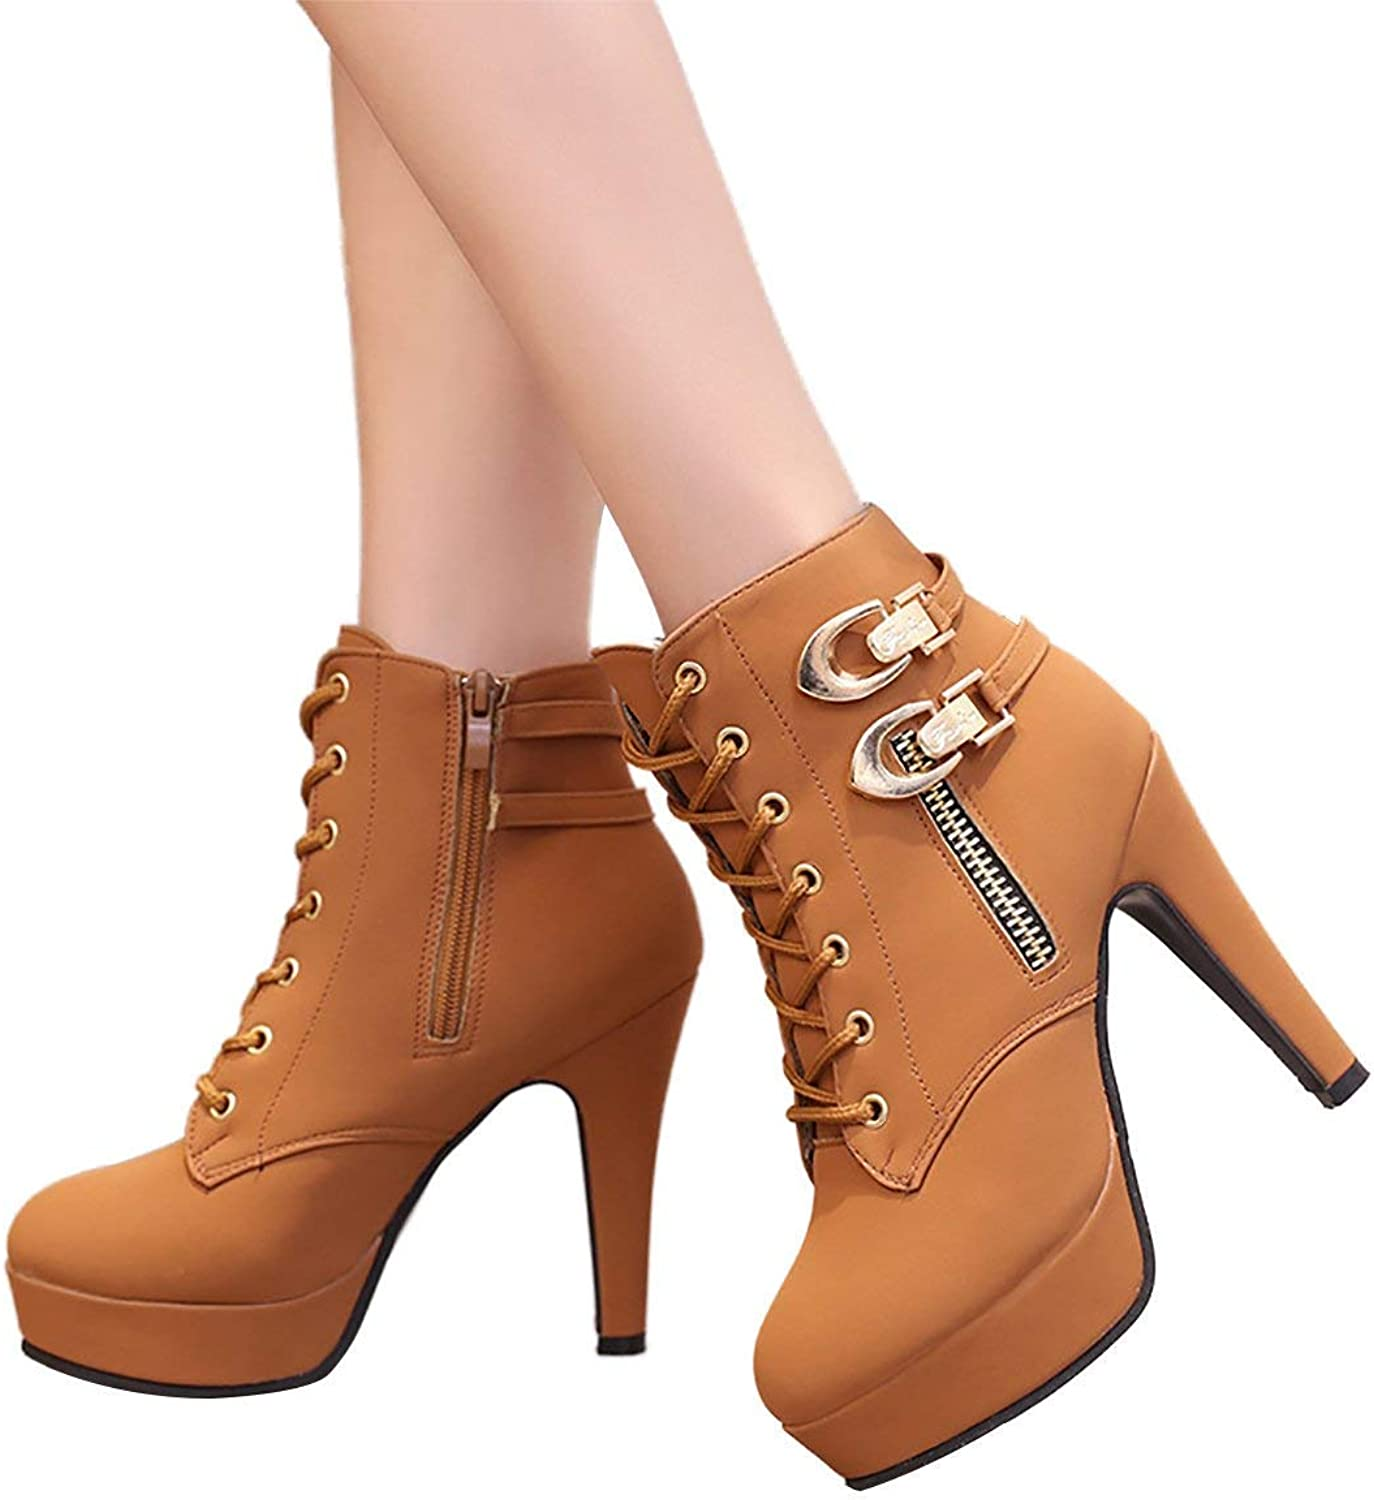 A-LING Women Ankle Booties Sexy Round Toe Lace up Buckle Stiletto Heel Platform Boots (-)